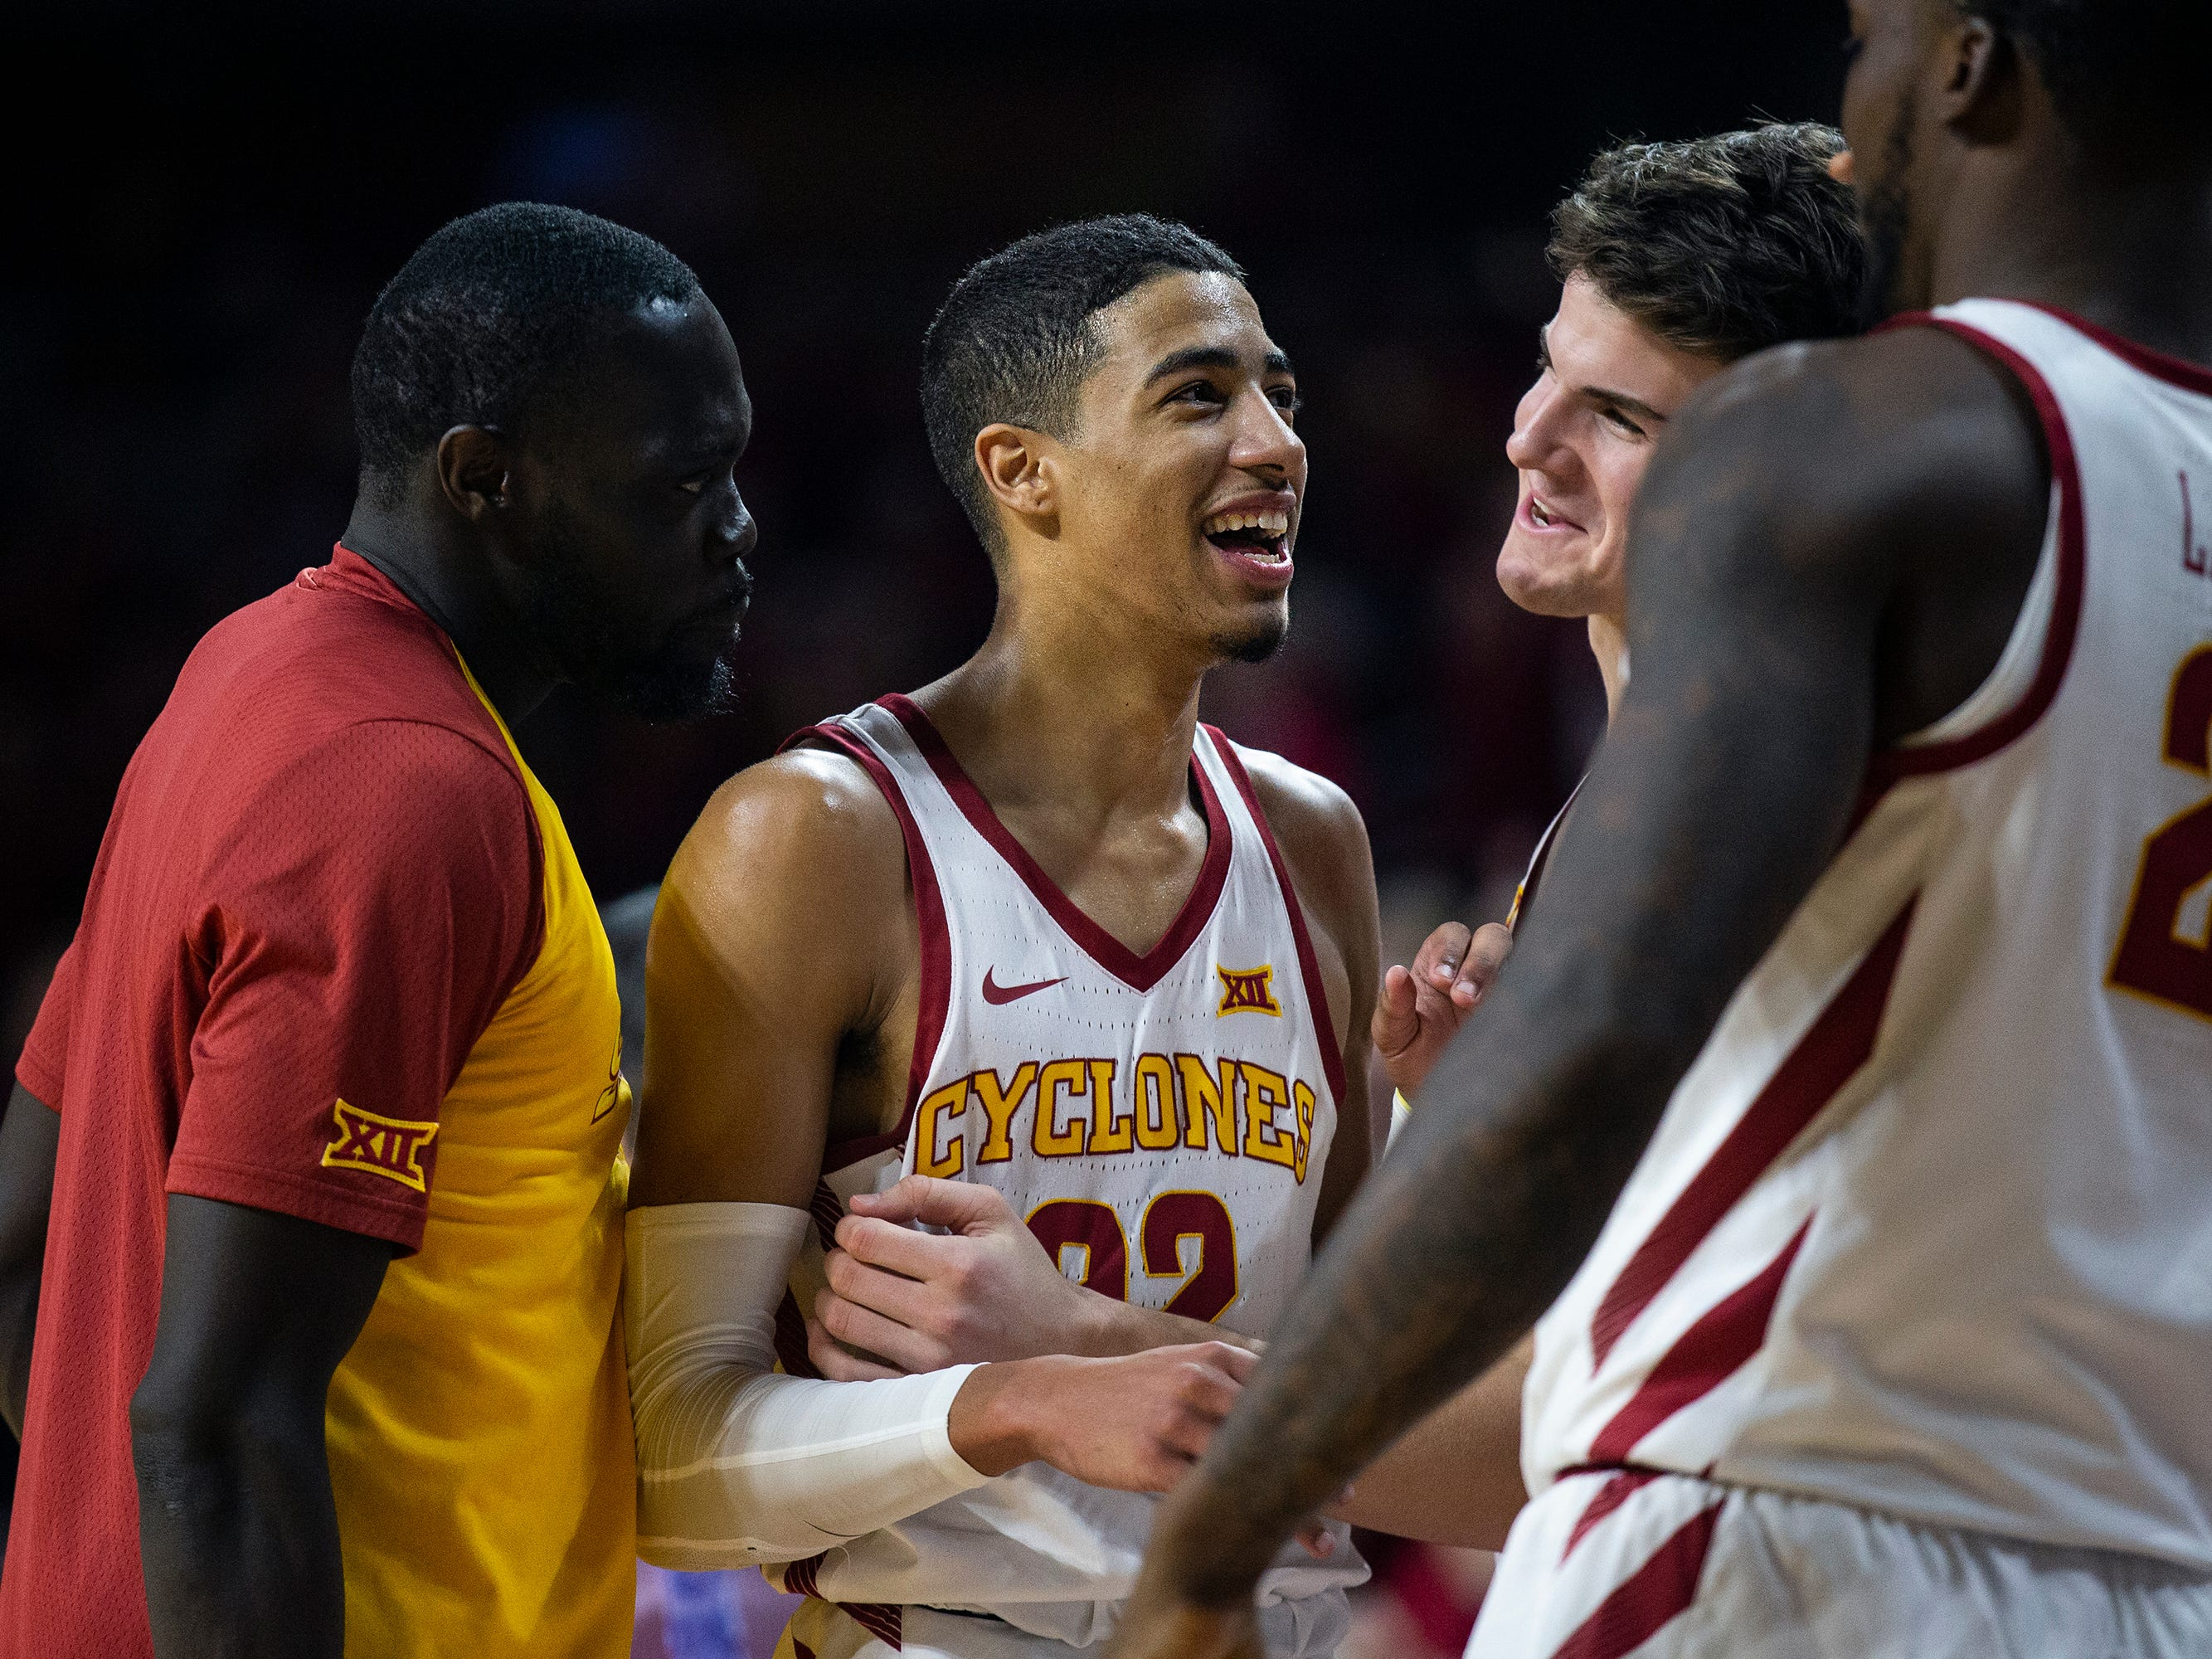 Iowa State's Tyrese Haliburton is cheered on by his teammates after setting a school record of 17 assists during the Iowa State men's basketball game against Southern on Sunday, Dec. 9, 2018, in Hilton Coliseum.